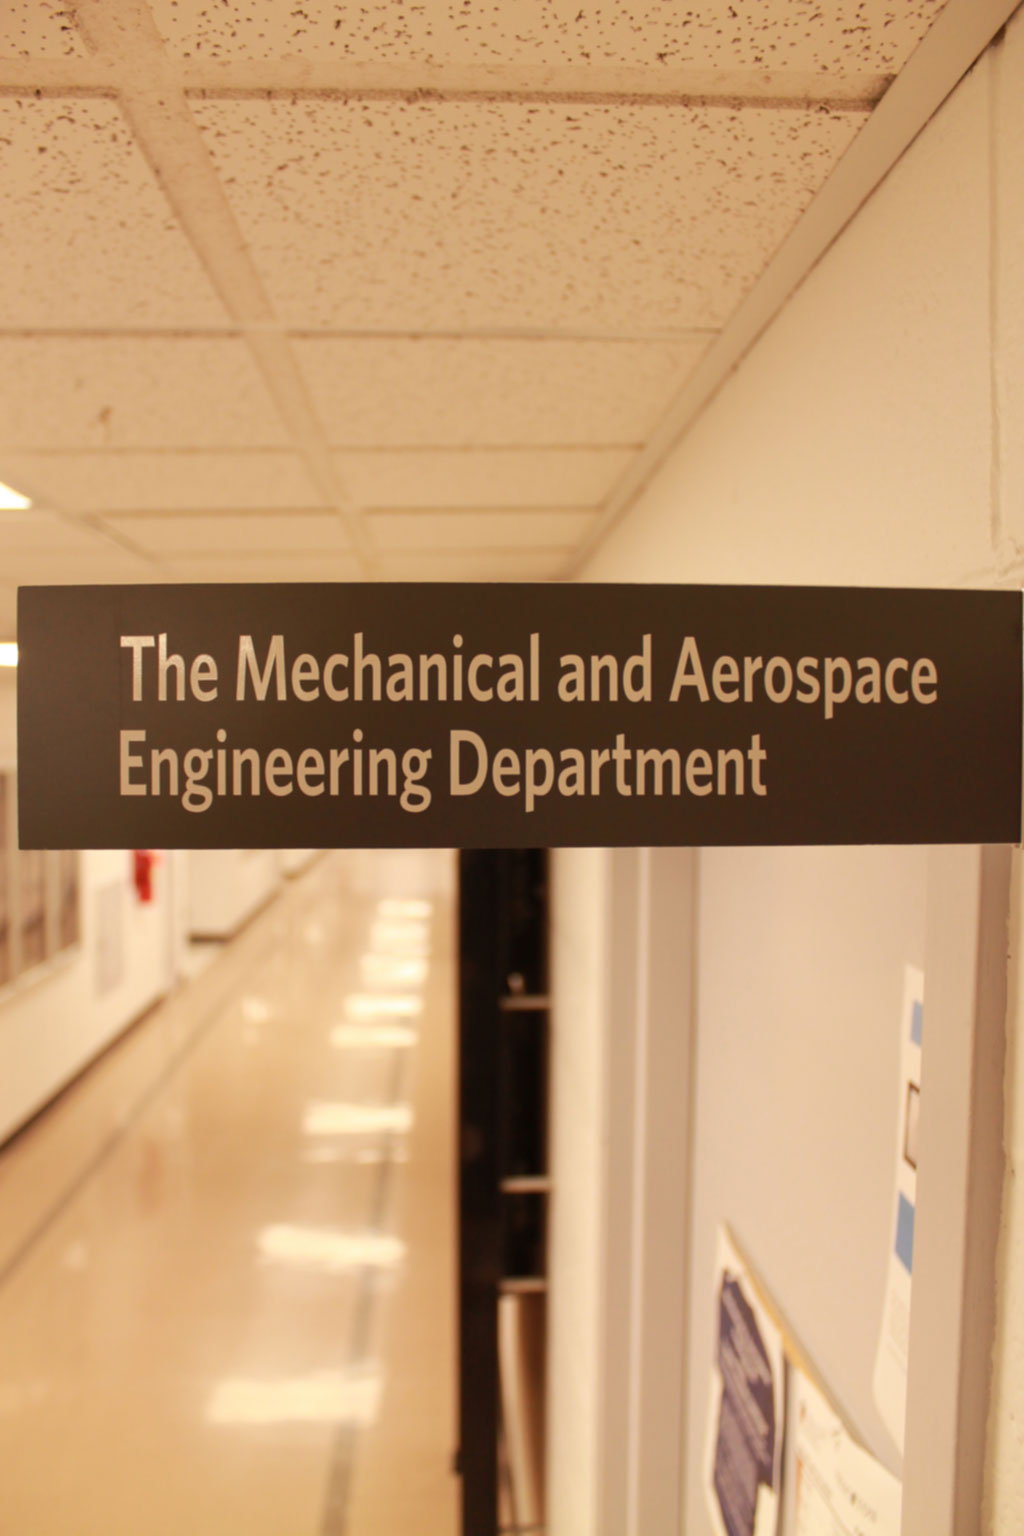 Mechanical and Aerospace Engineering Department